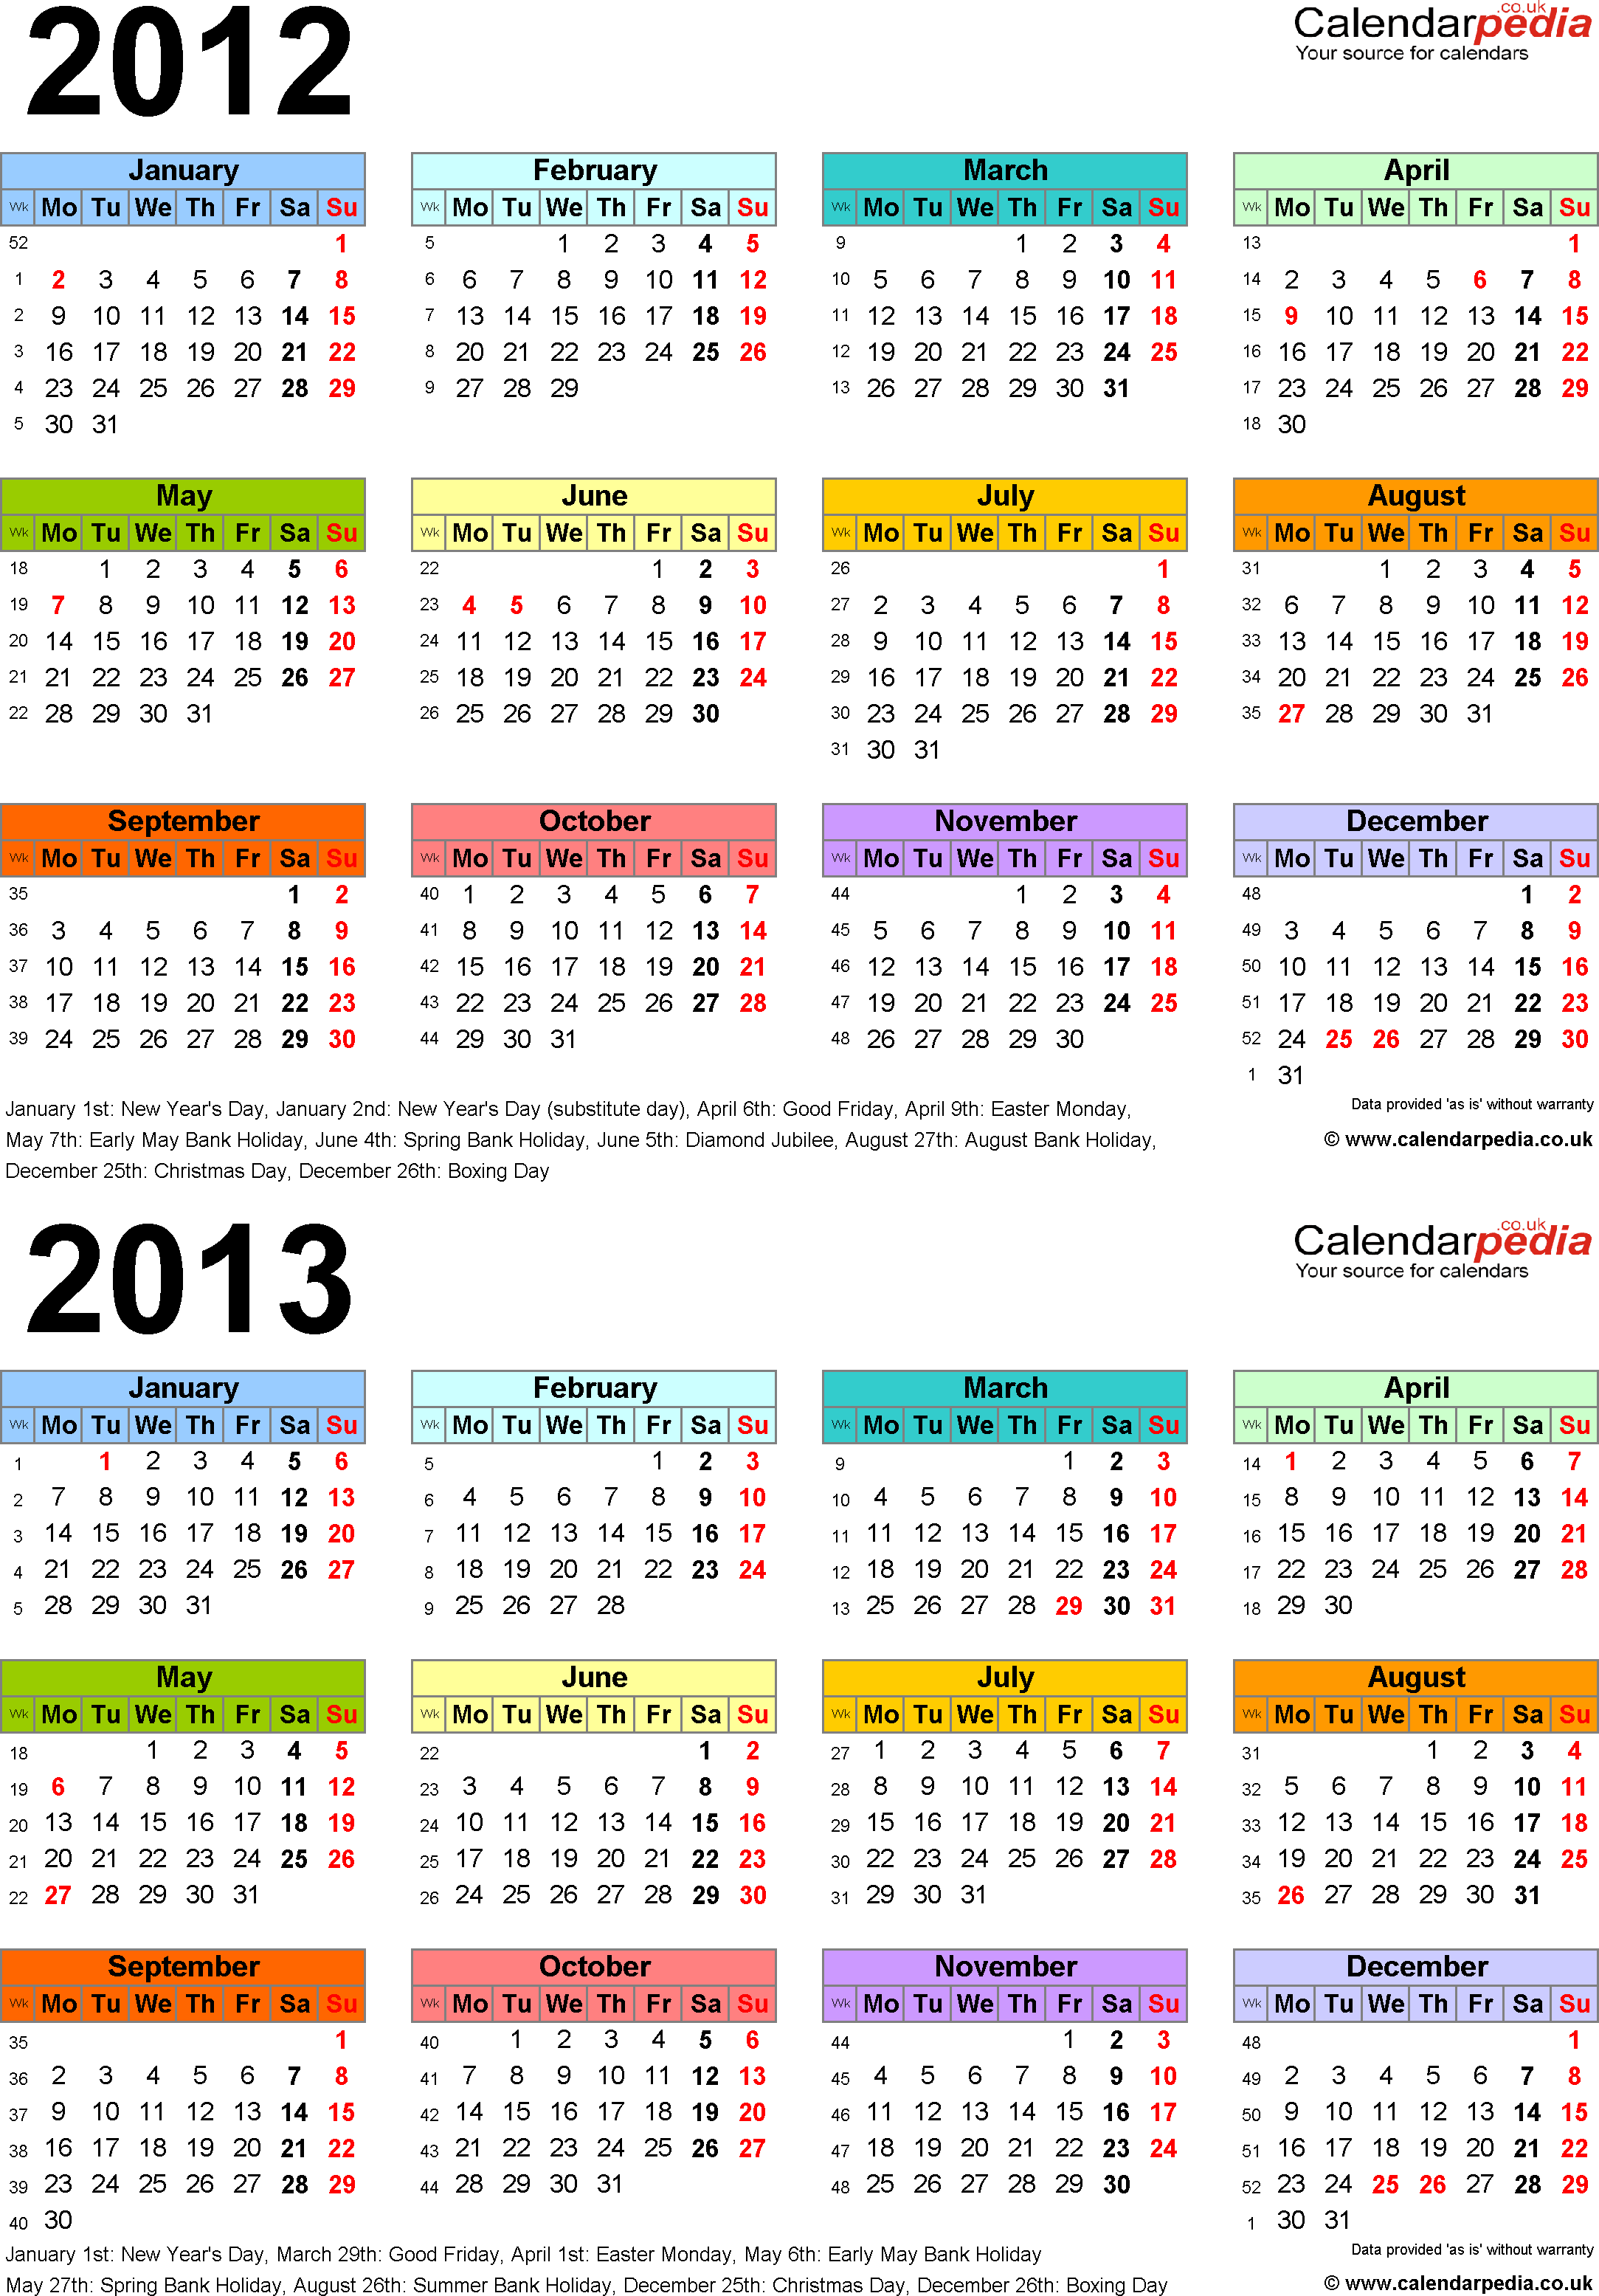 Download Template 3: Word template for two year calendar 2012/2013 in colour (portrait orientation, 1 page, A4)